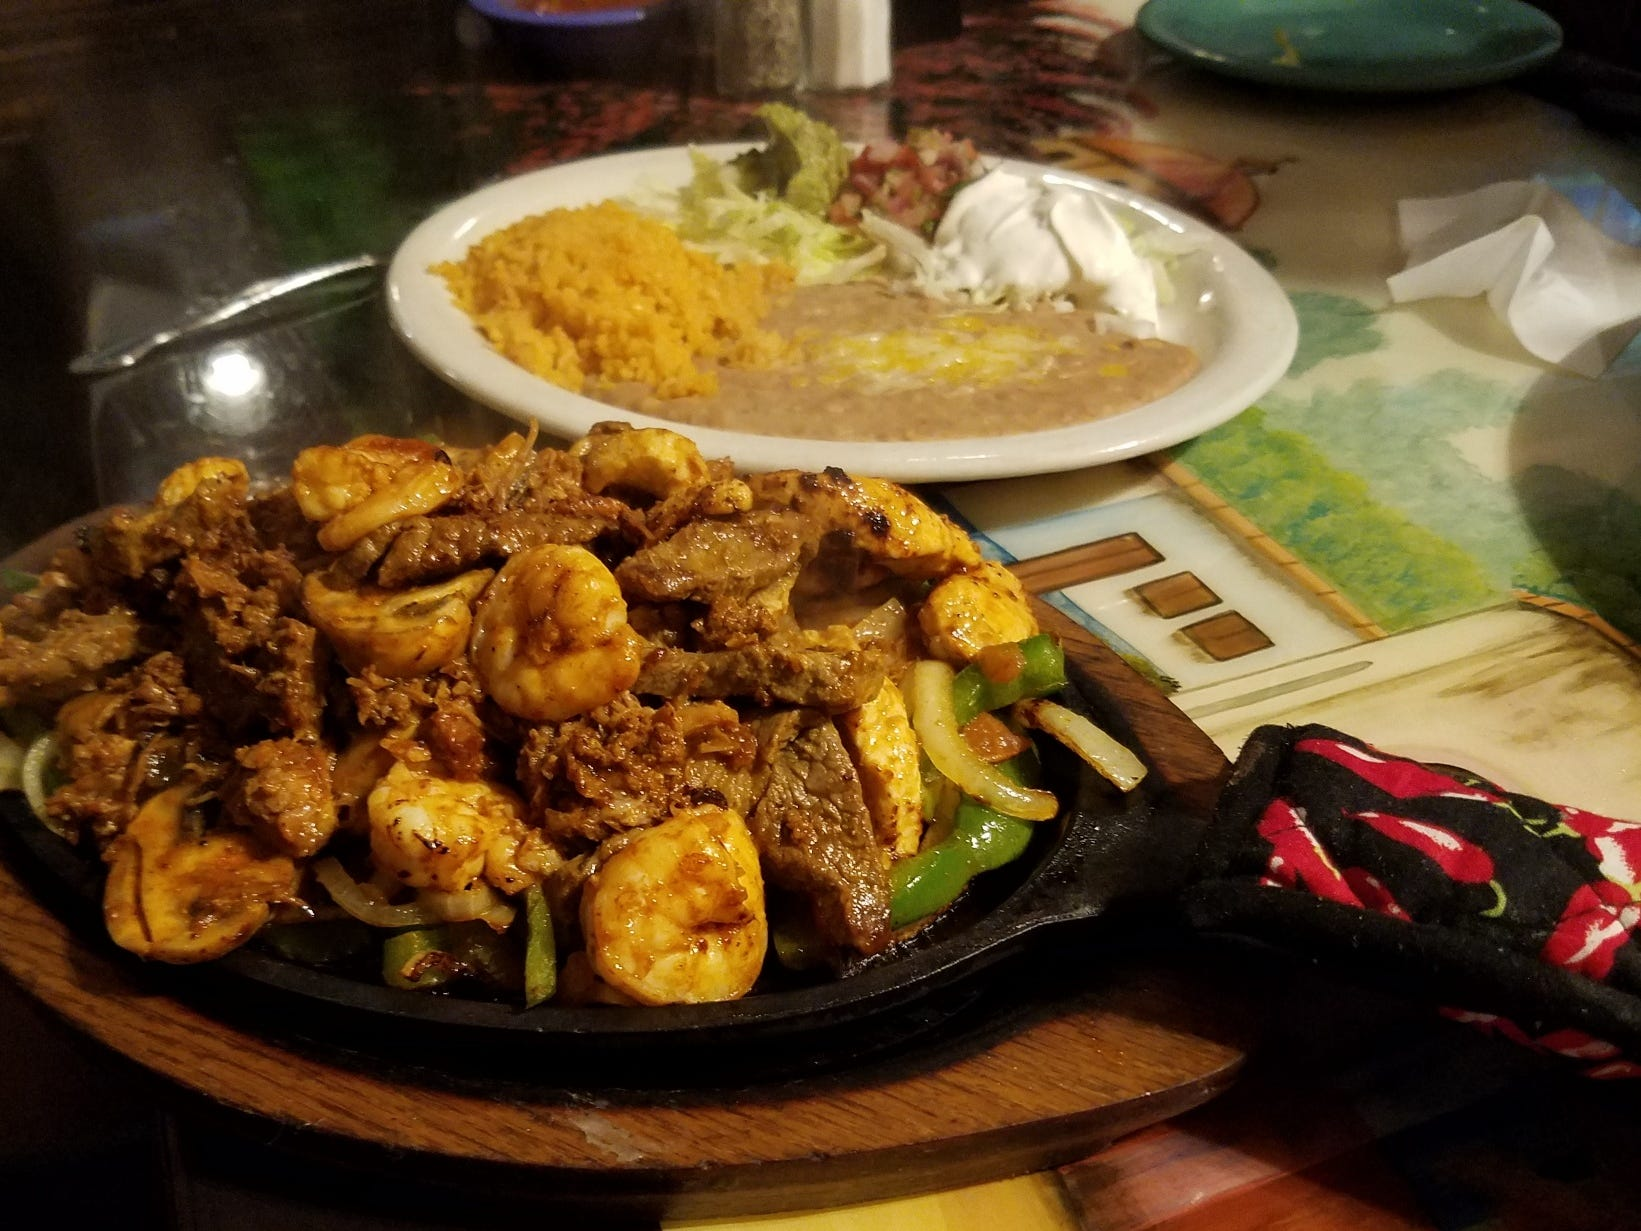 The fajita parrilladas combines five different meats with sauteed vegetables and is served with all the trimmings.